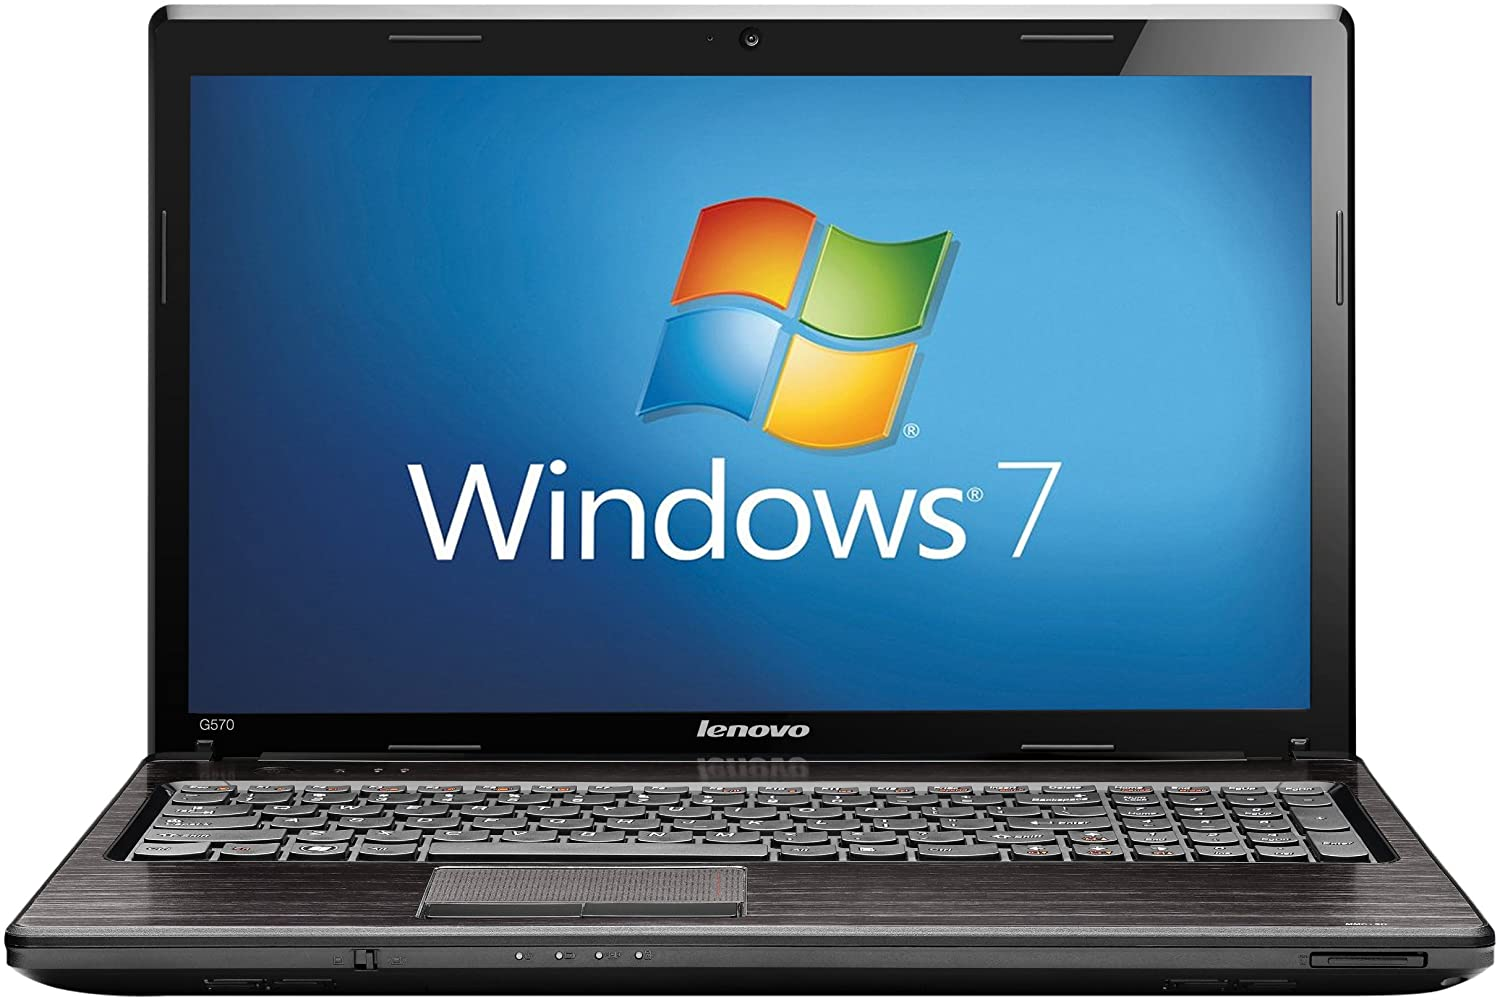 d0adc8030680f Lenovo G570 15.6 inch Laptop - Black (Intel Core i5 2450M 2.5GHz, 6GB RAM,  750GB HDD, DVDRW, LAN, WLAN, Webcam, Windows 7 Home Premium 64-Bit): ...